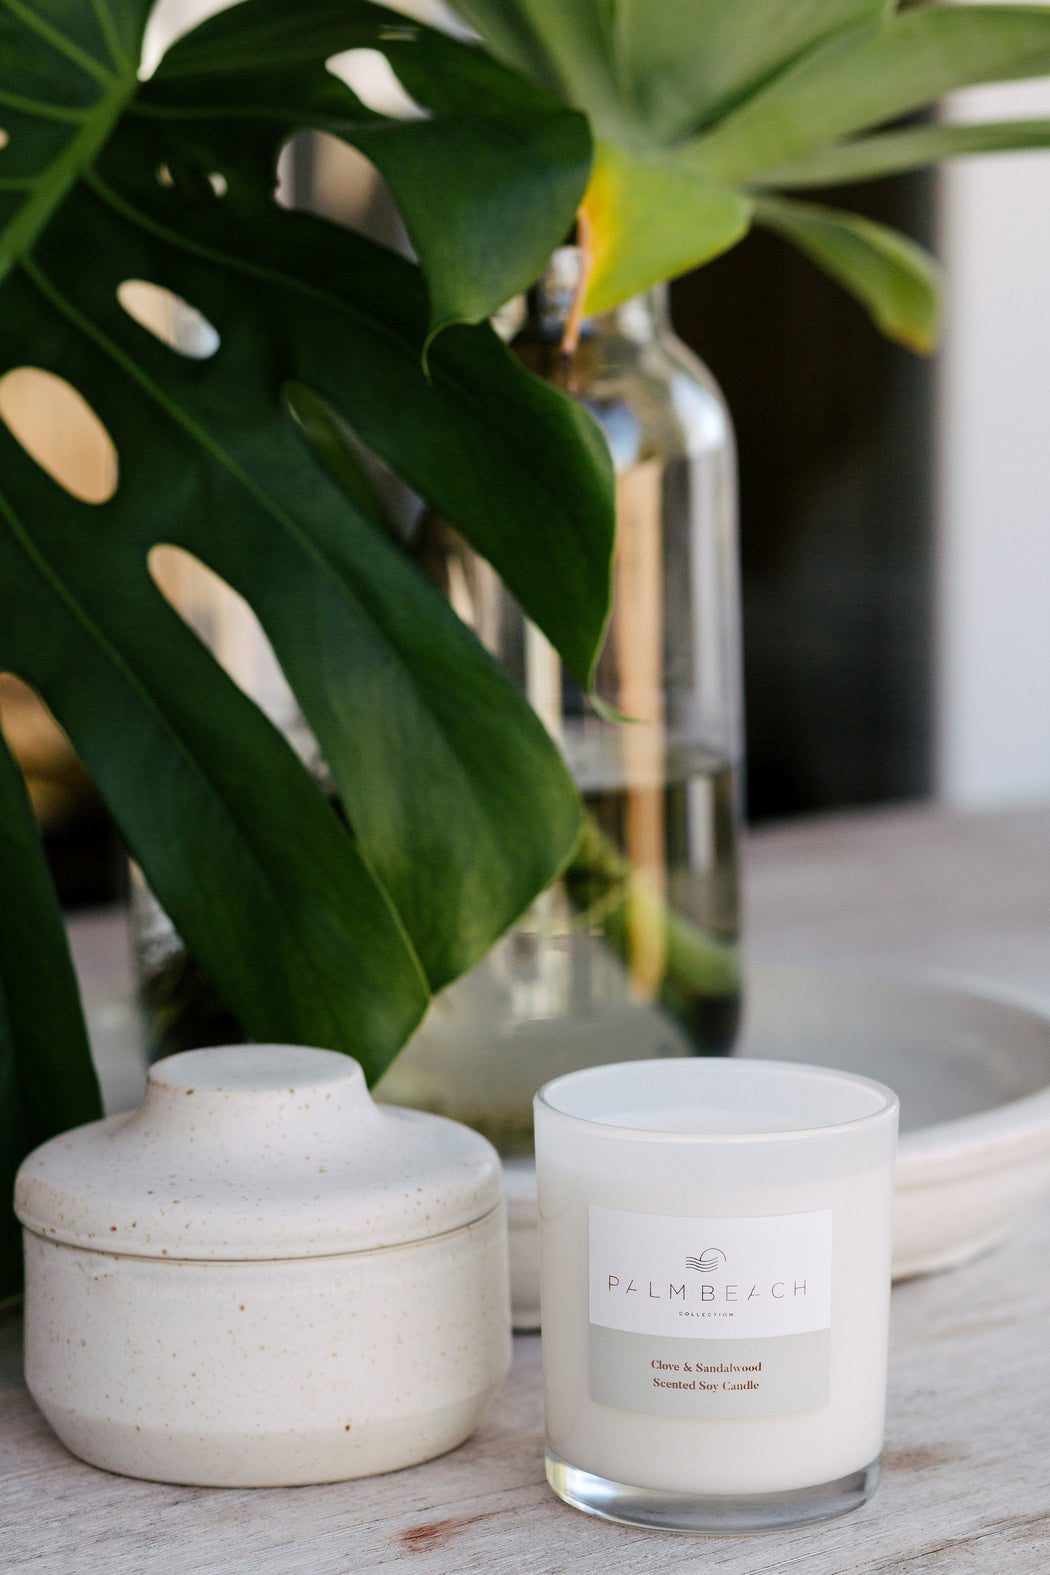 Palm Beach-PALM BEACH Clove and Sandalwood Standard Candle-Mott and Mulberry